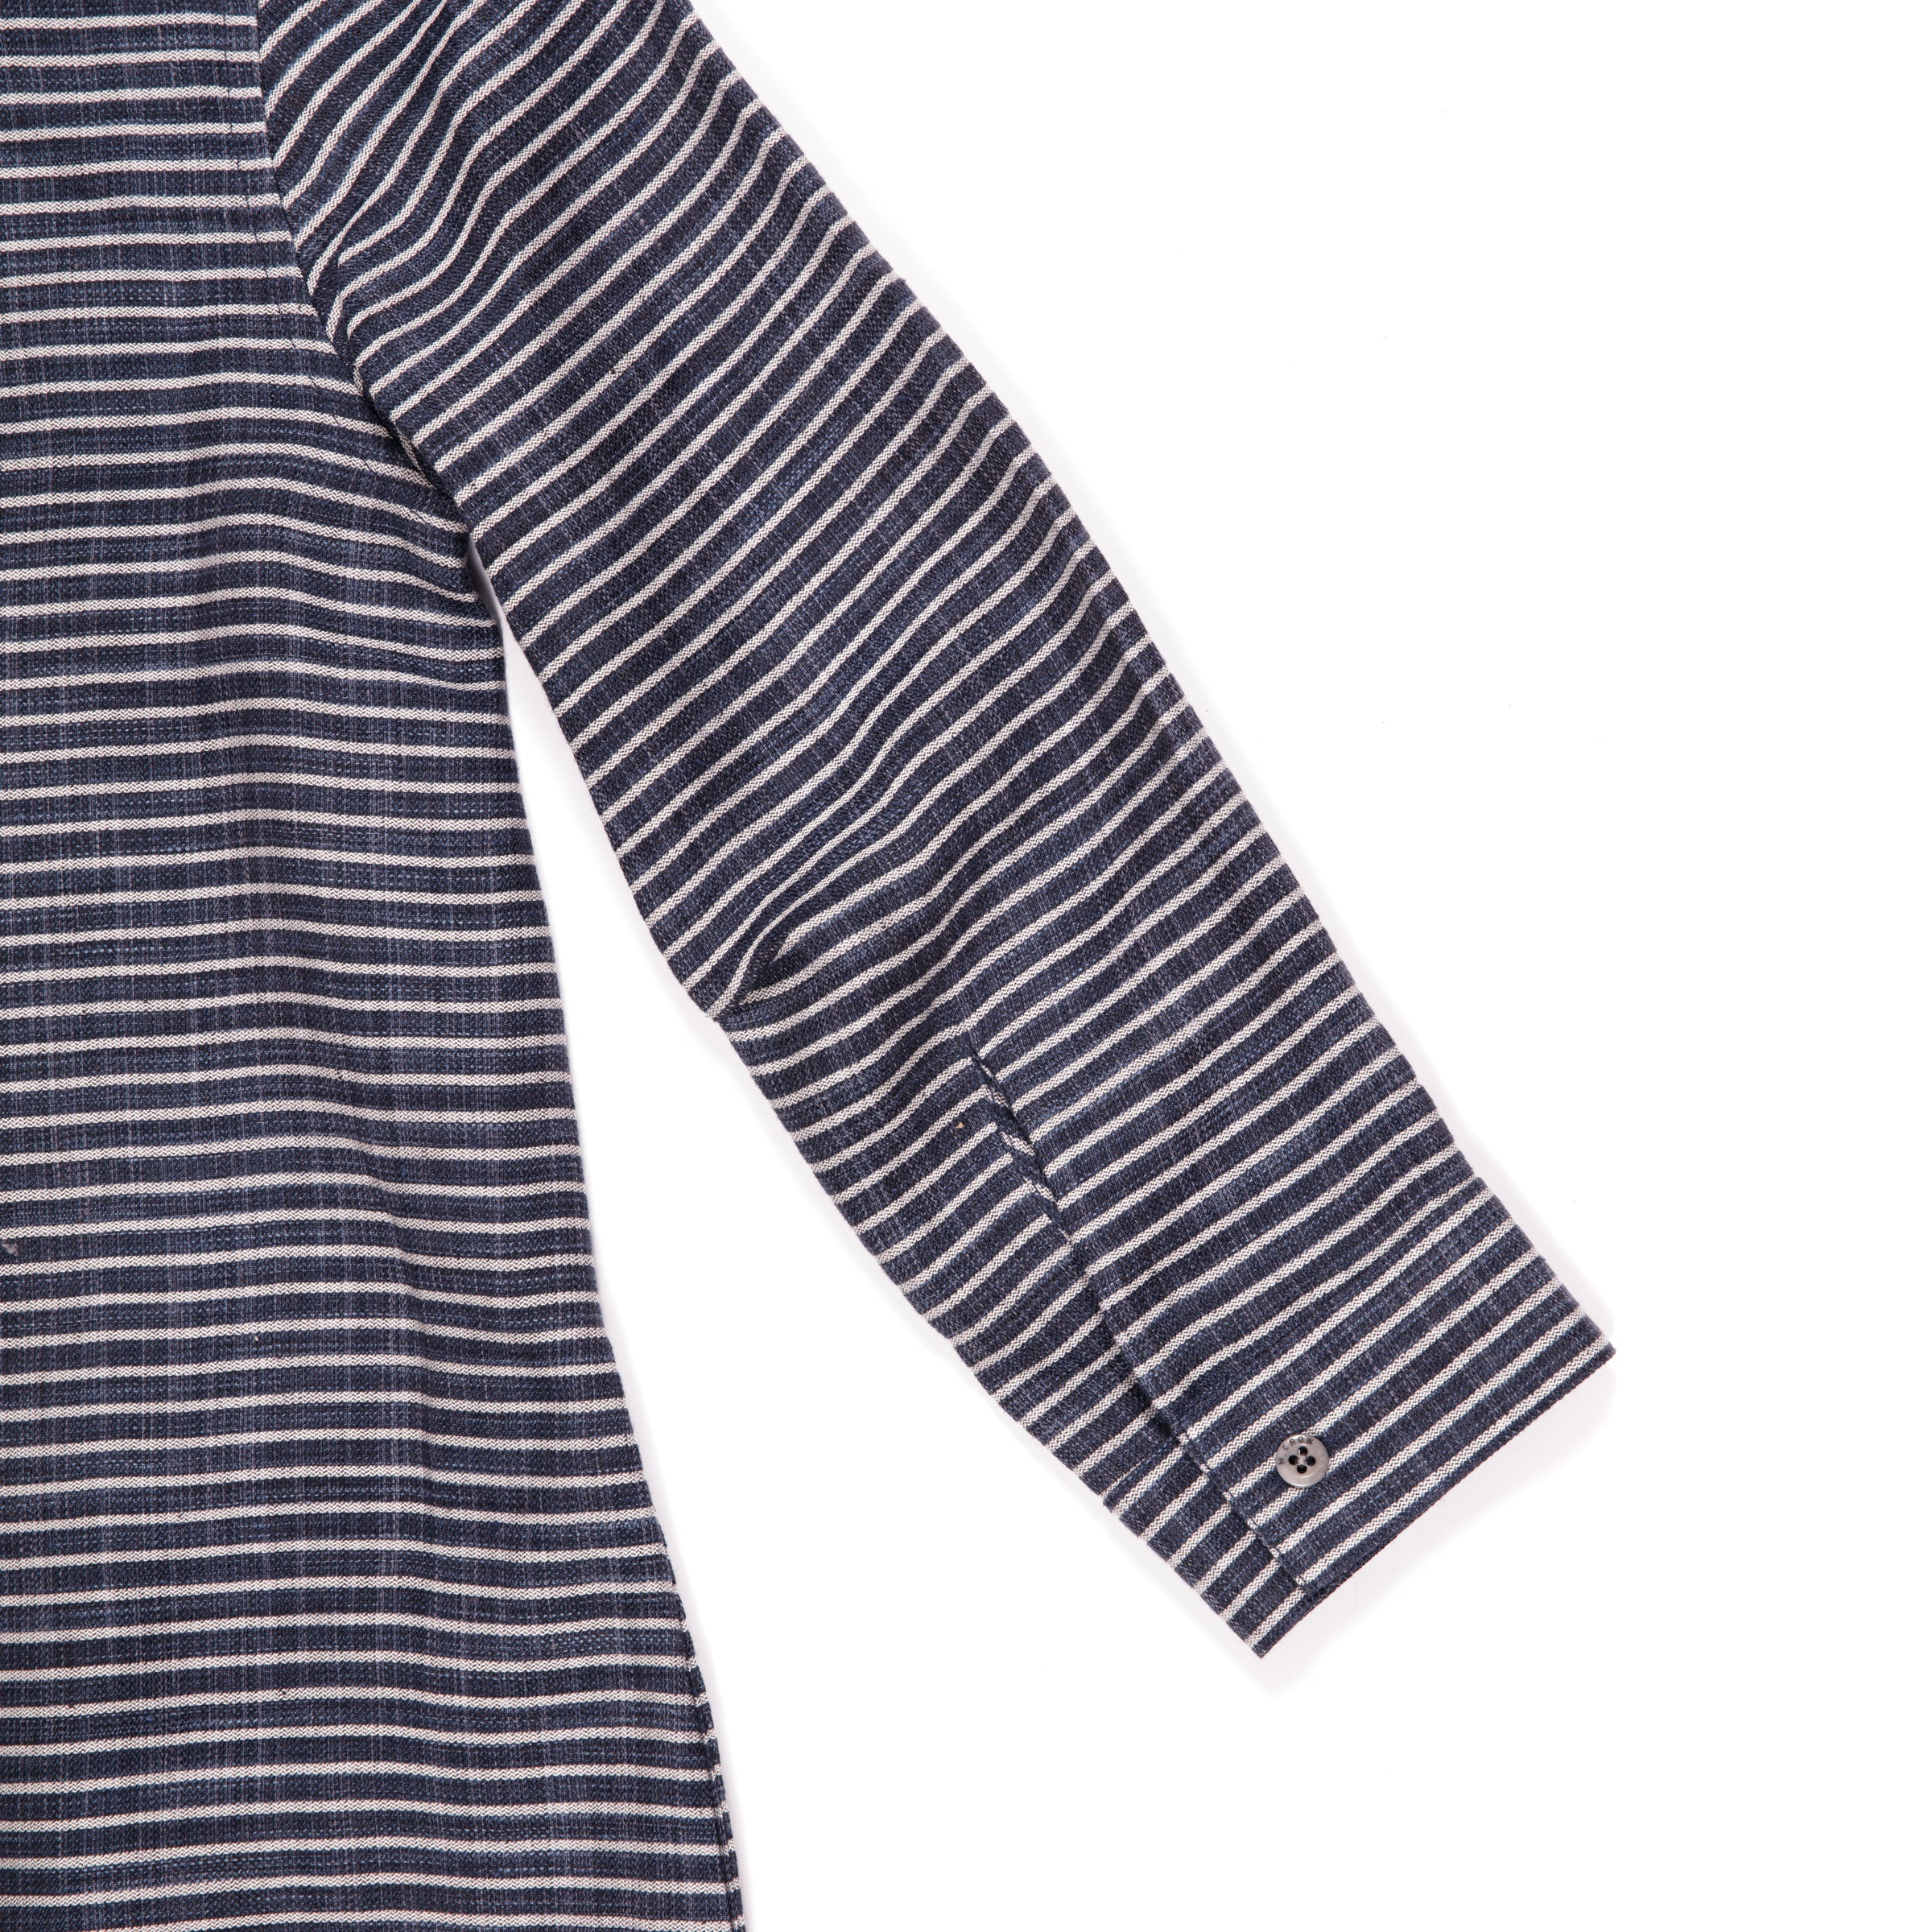 NAUTICAL STRIPED LIGHT LINEN